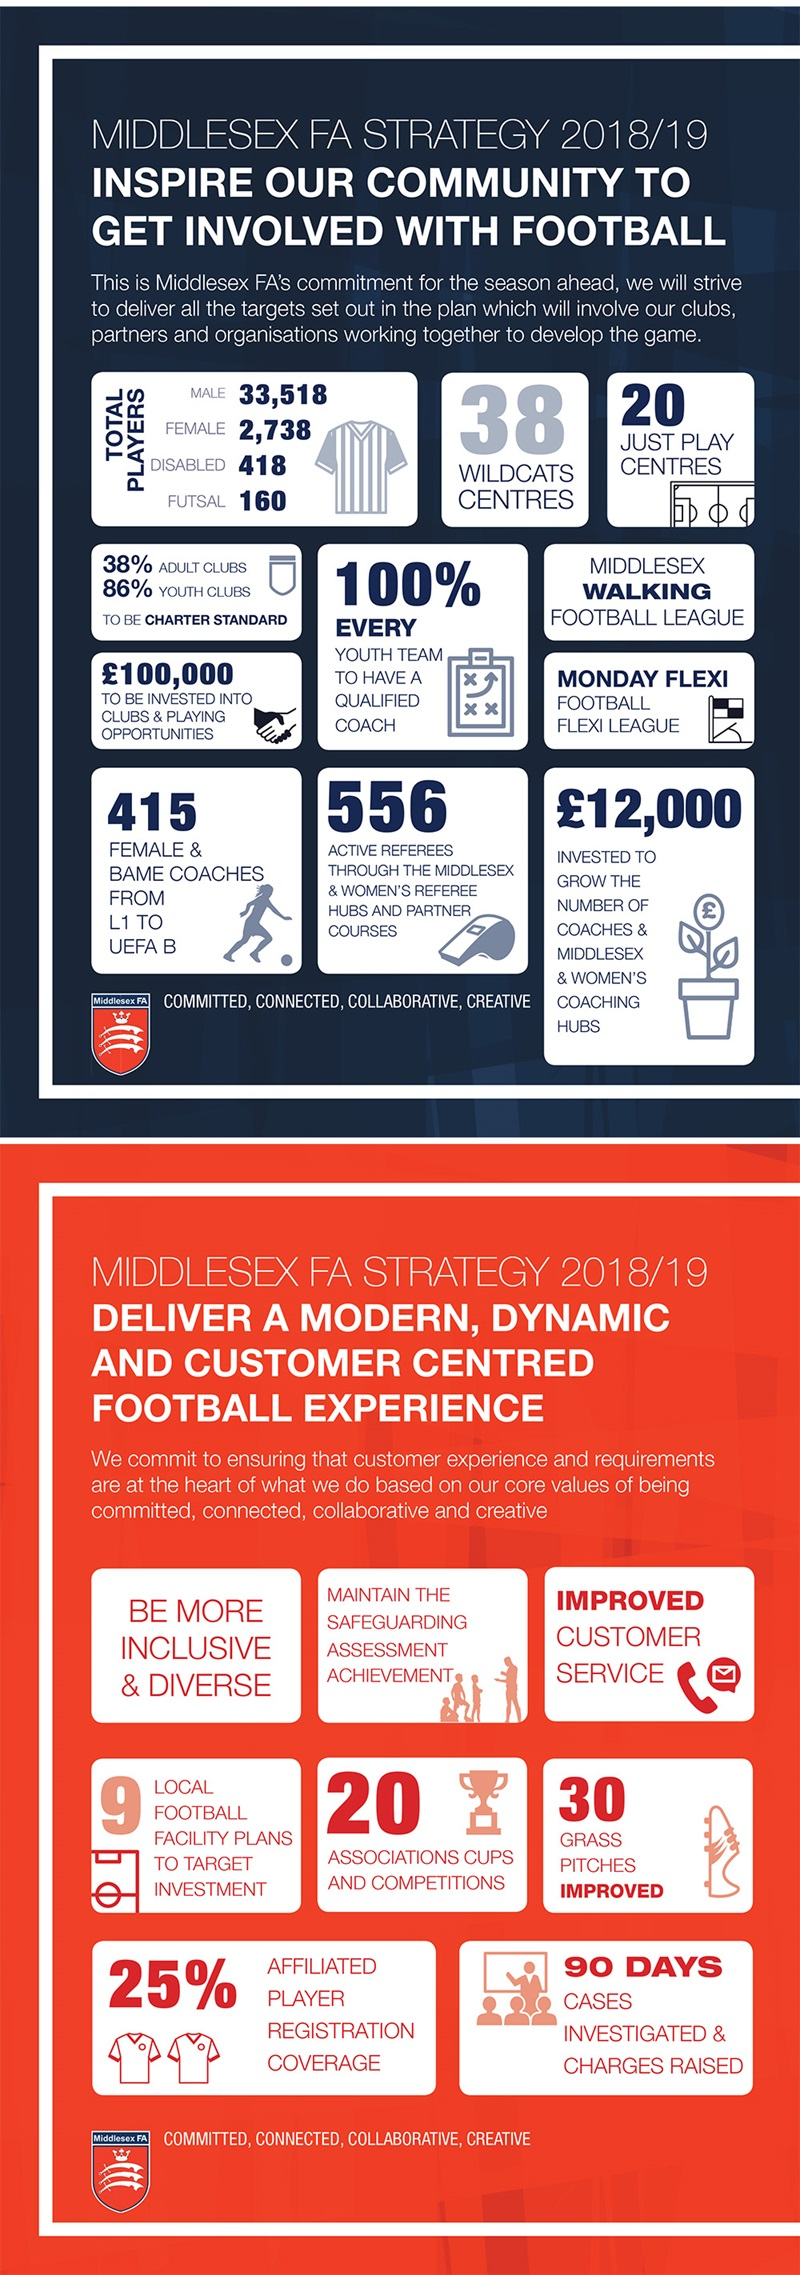 Middlesex FA Strategy